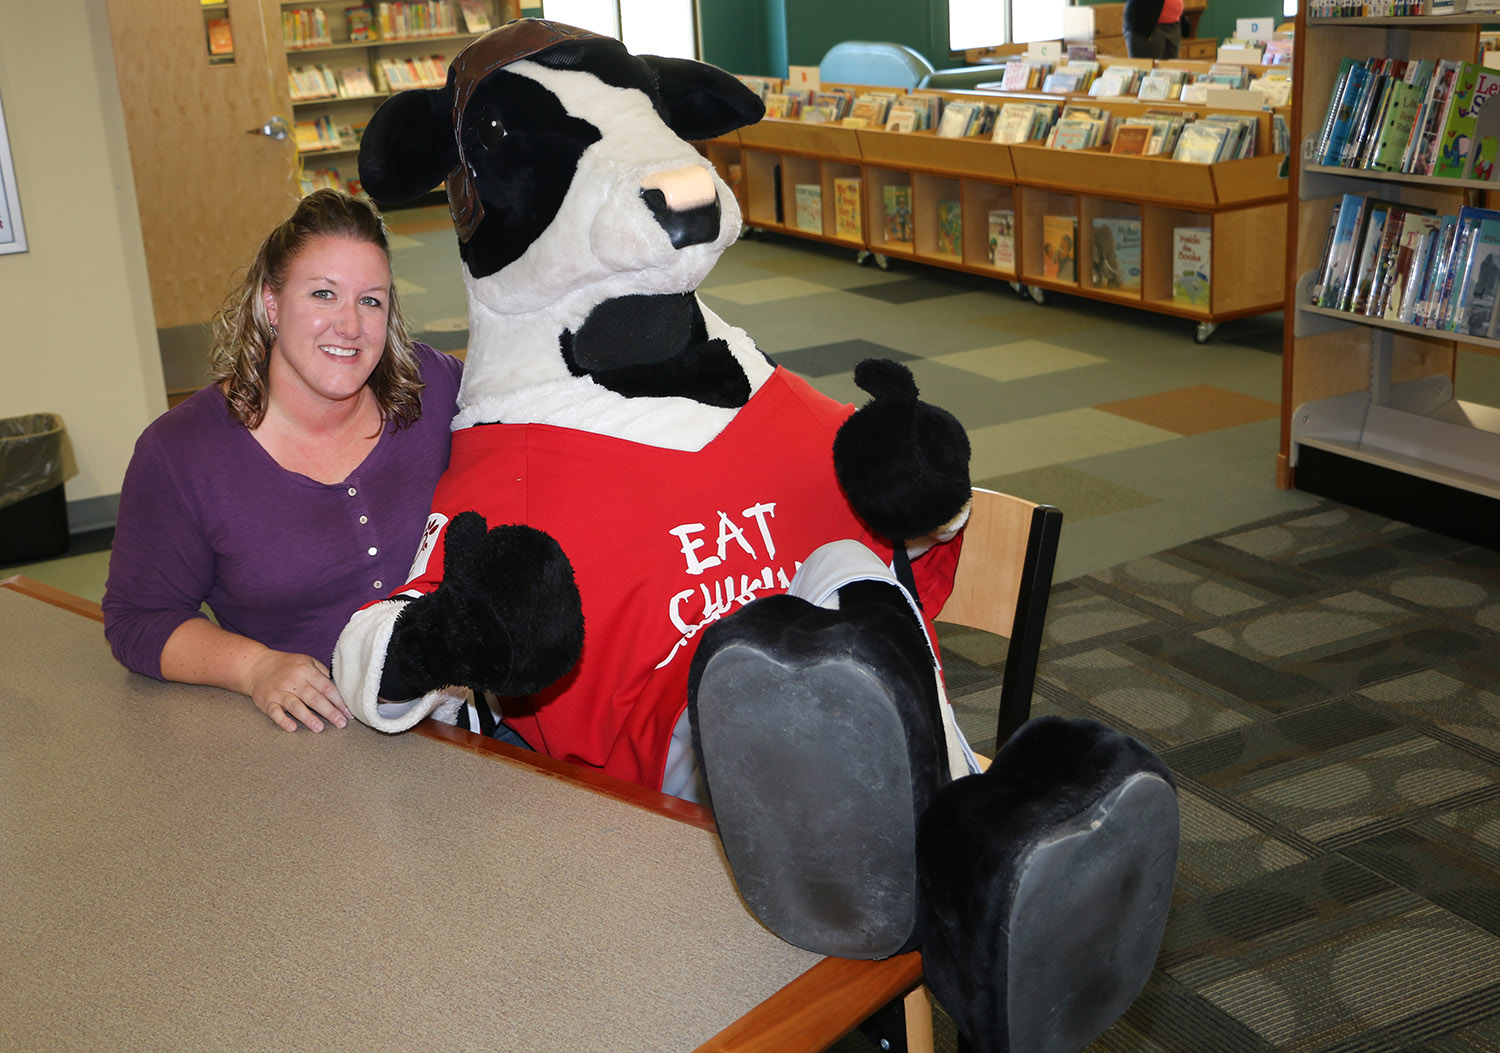 Chick Filet cow sitting on ladies lap